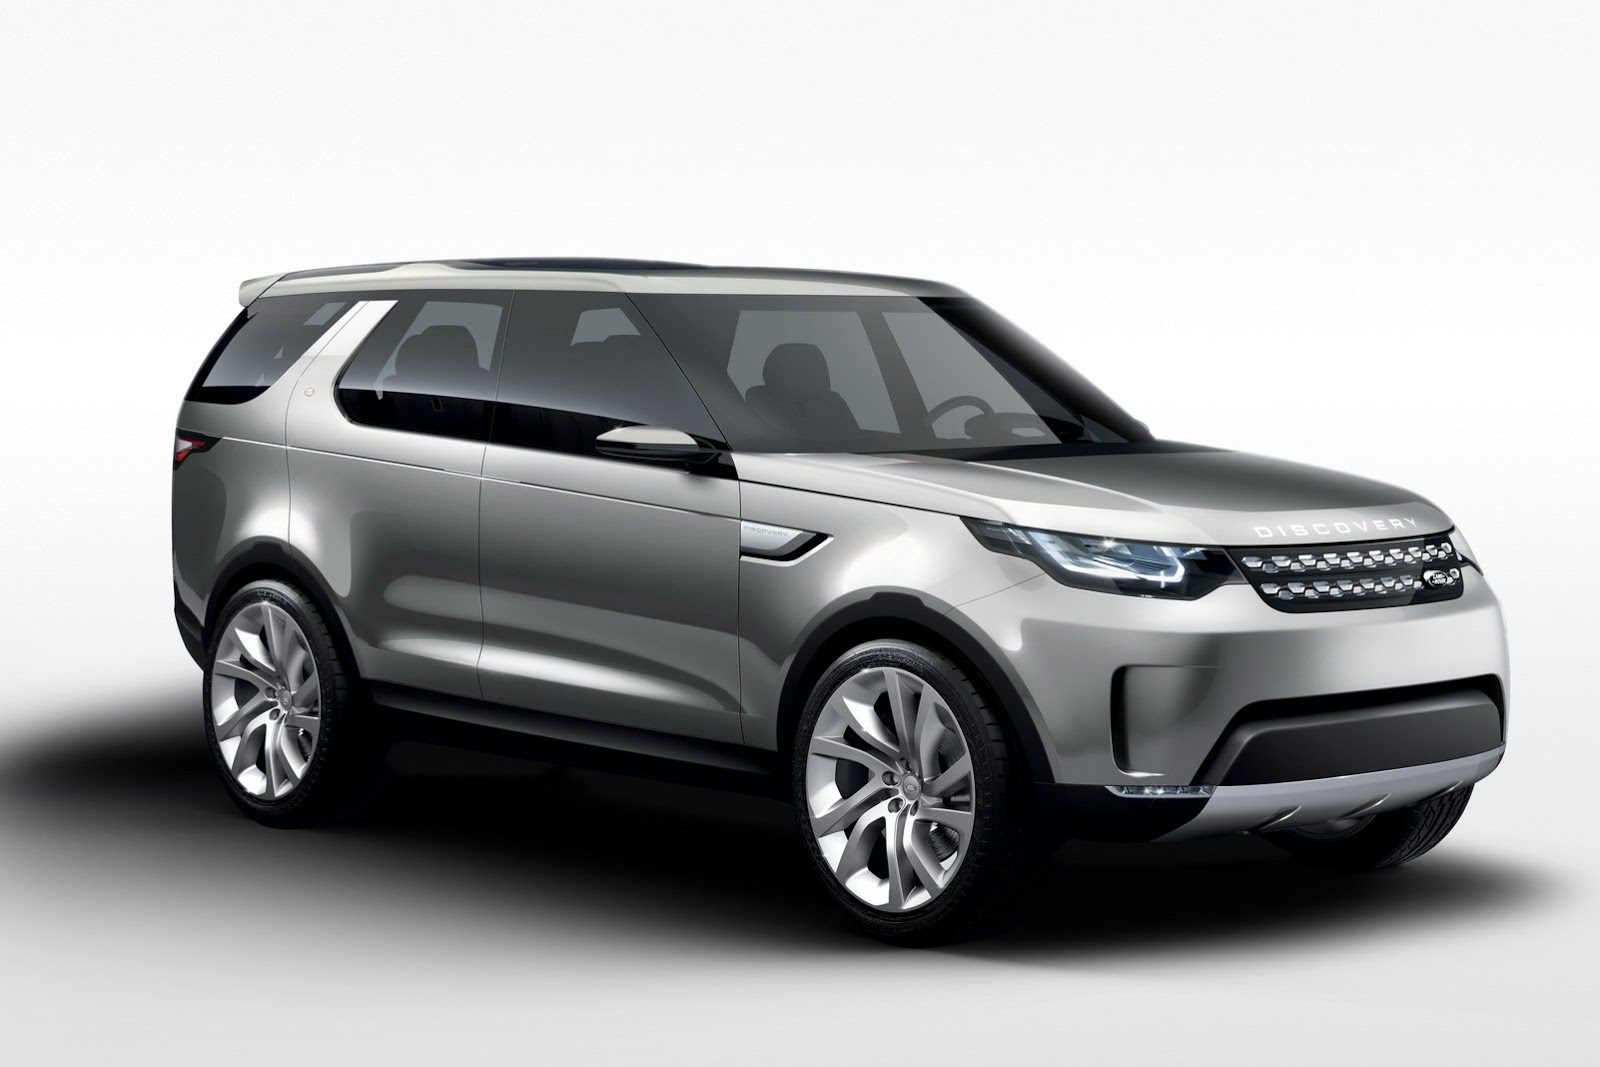 new land rover discovery family could stretch beyond three models gtspirit. Black Bedroom Furniture Sets. Home Design Ideas